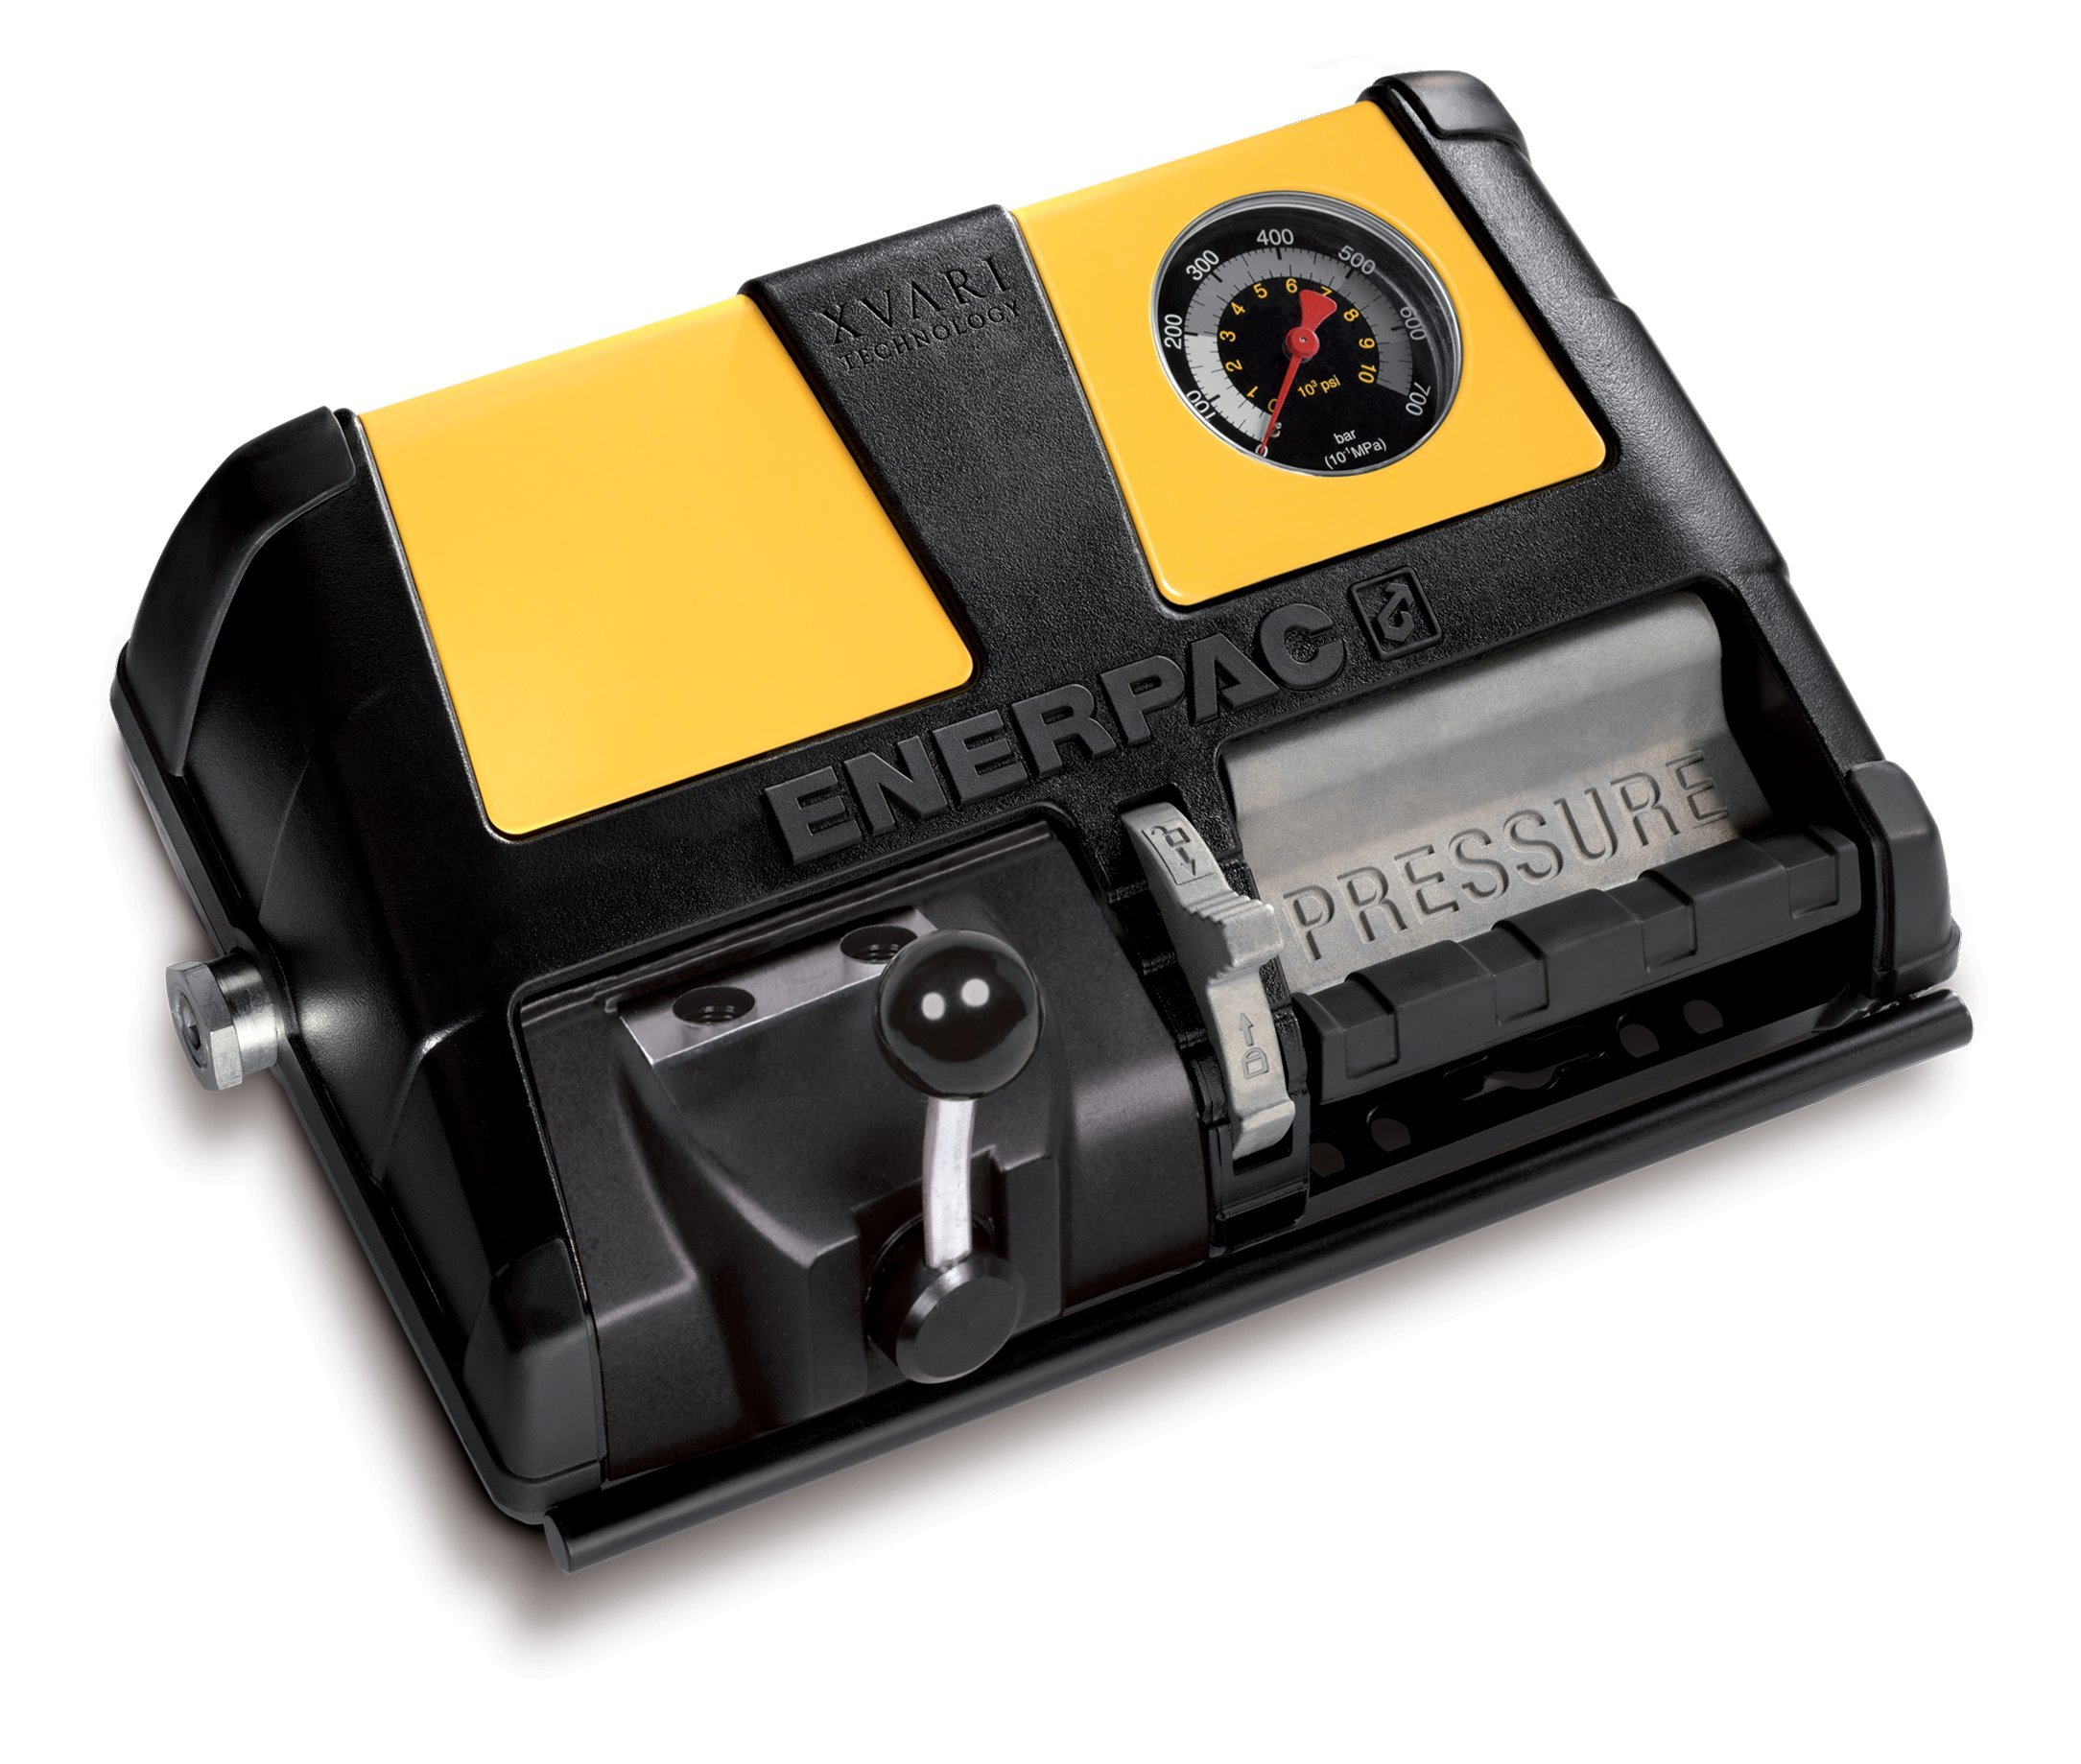 Enerpac XA-11VG Double-Acting Air-Driven Foot Pump with 1 L Usable Oil Capacity and Gauge